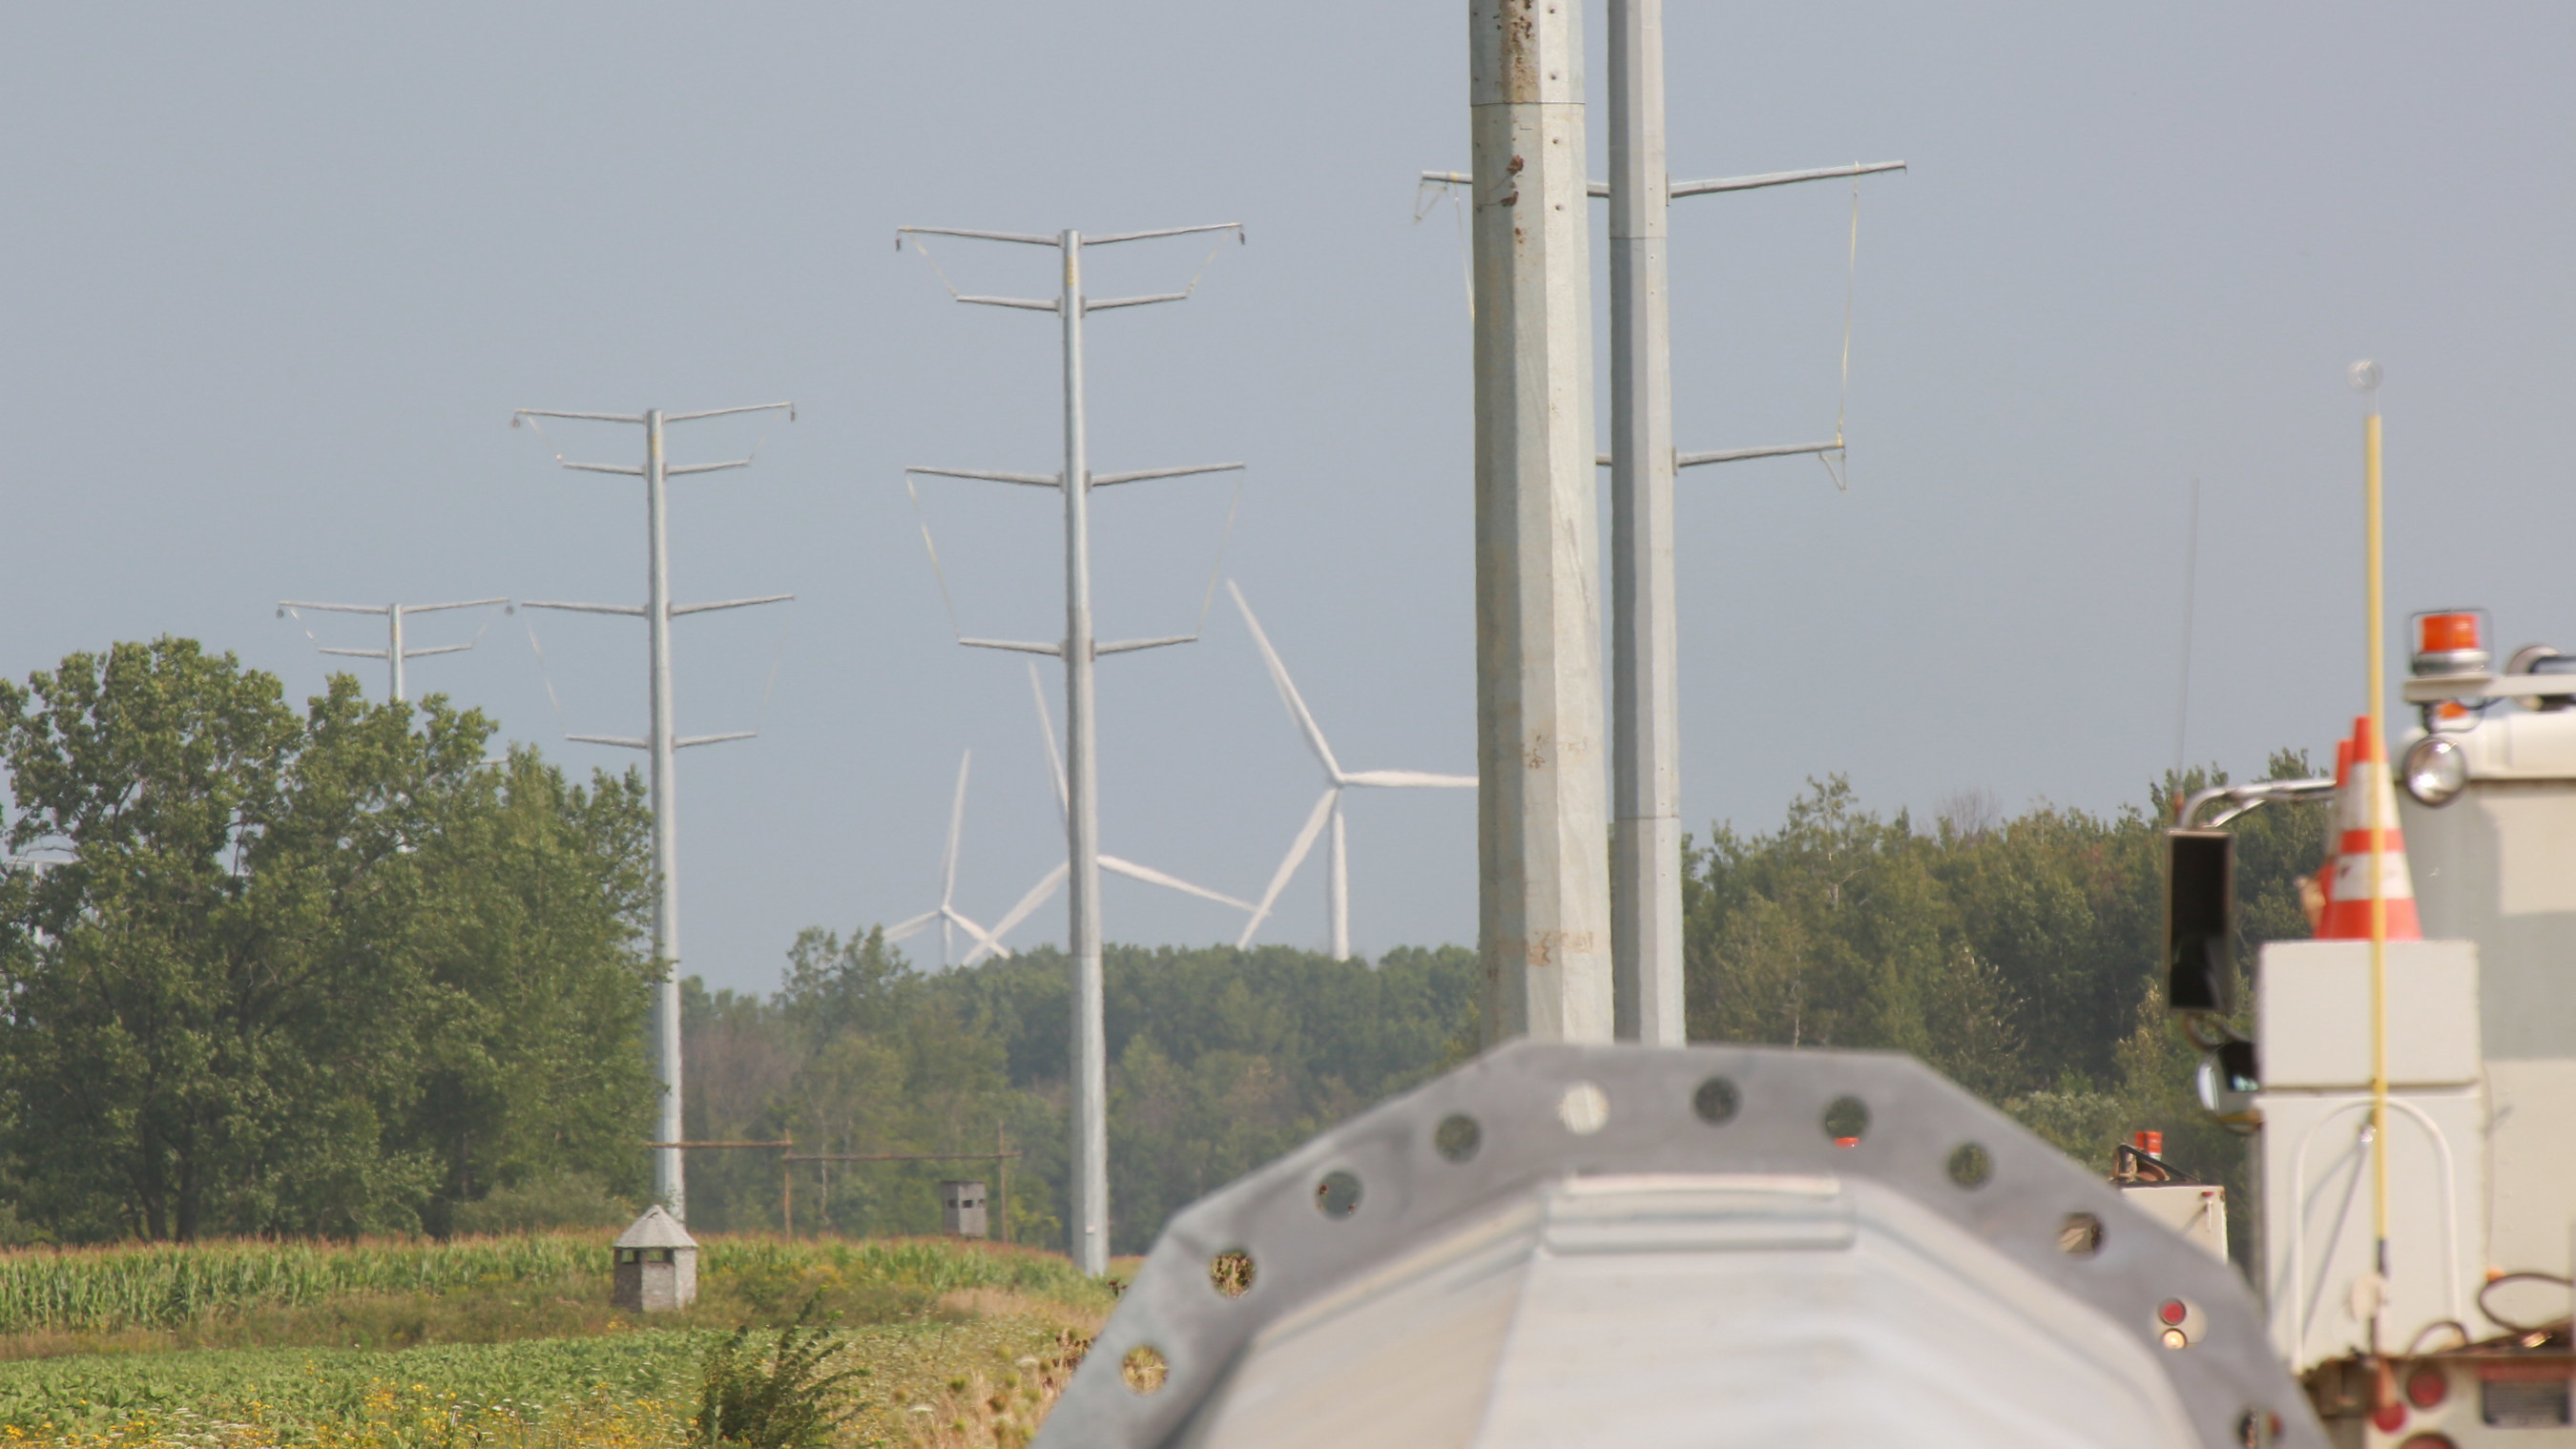 ITC Energizes Thumb Loop Transmission Line - capable of delivering 5,000 MW of low-cost wind energy across Michigan